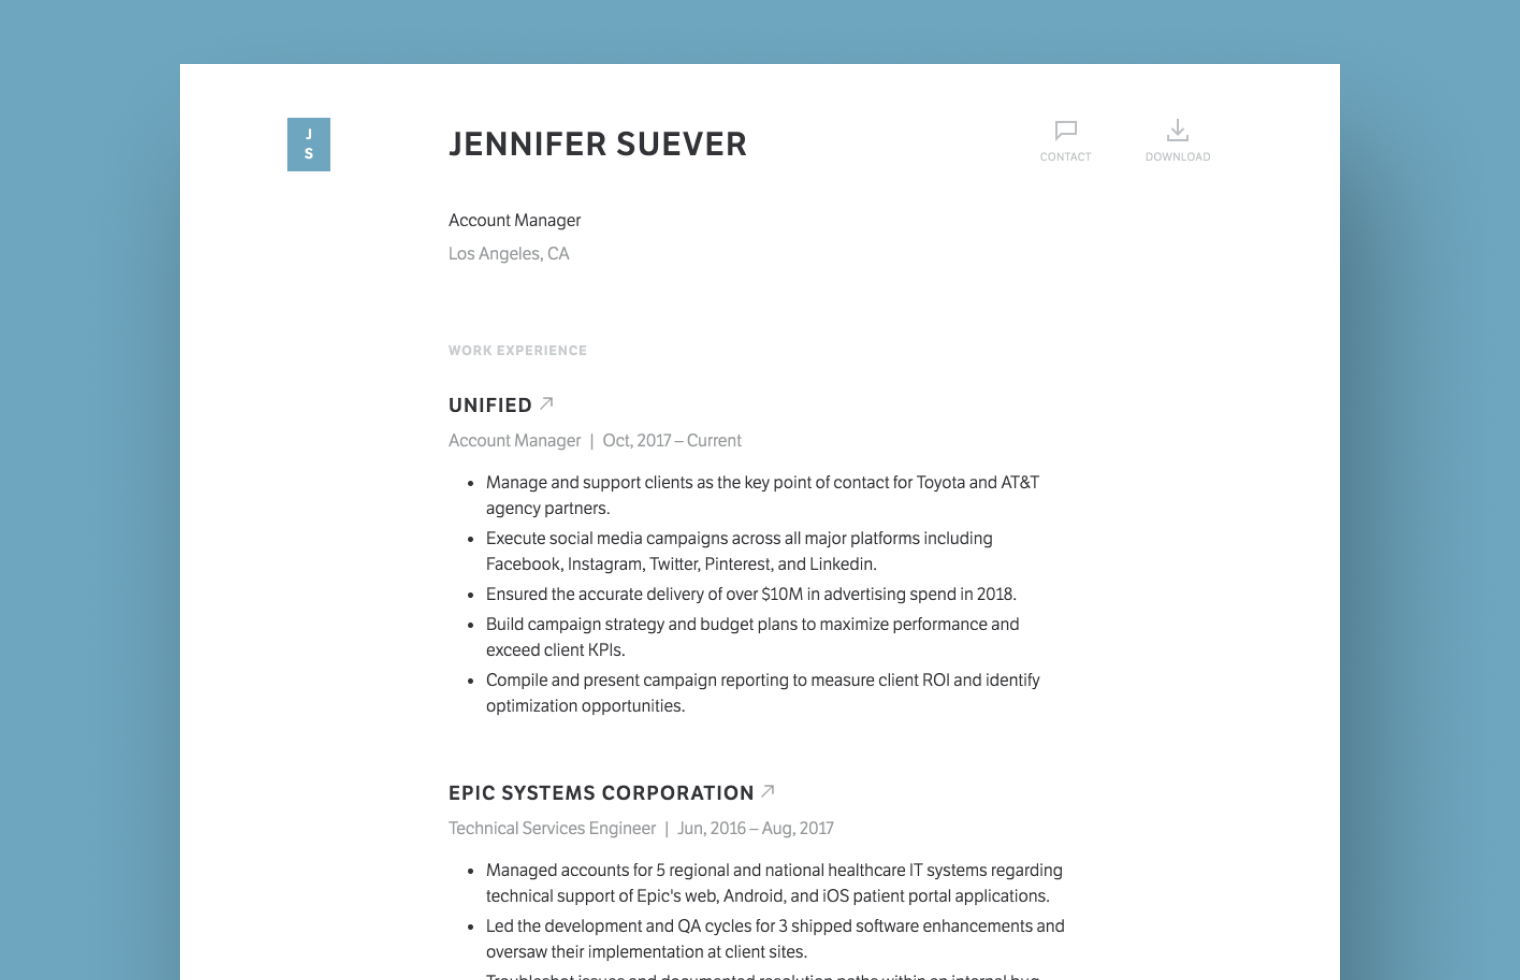 Account Manager resume example built with Standard Resume